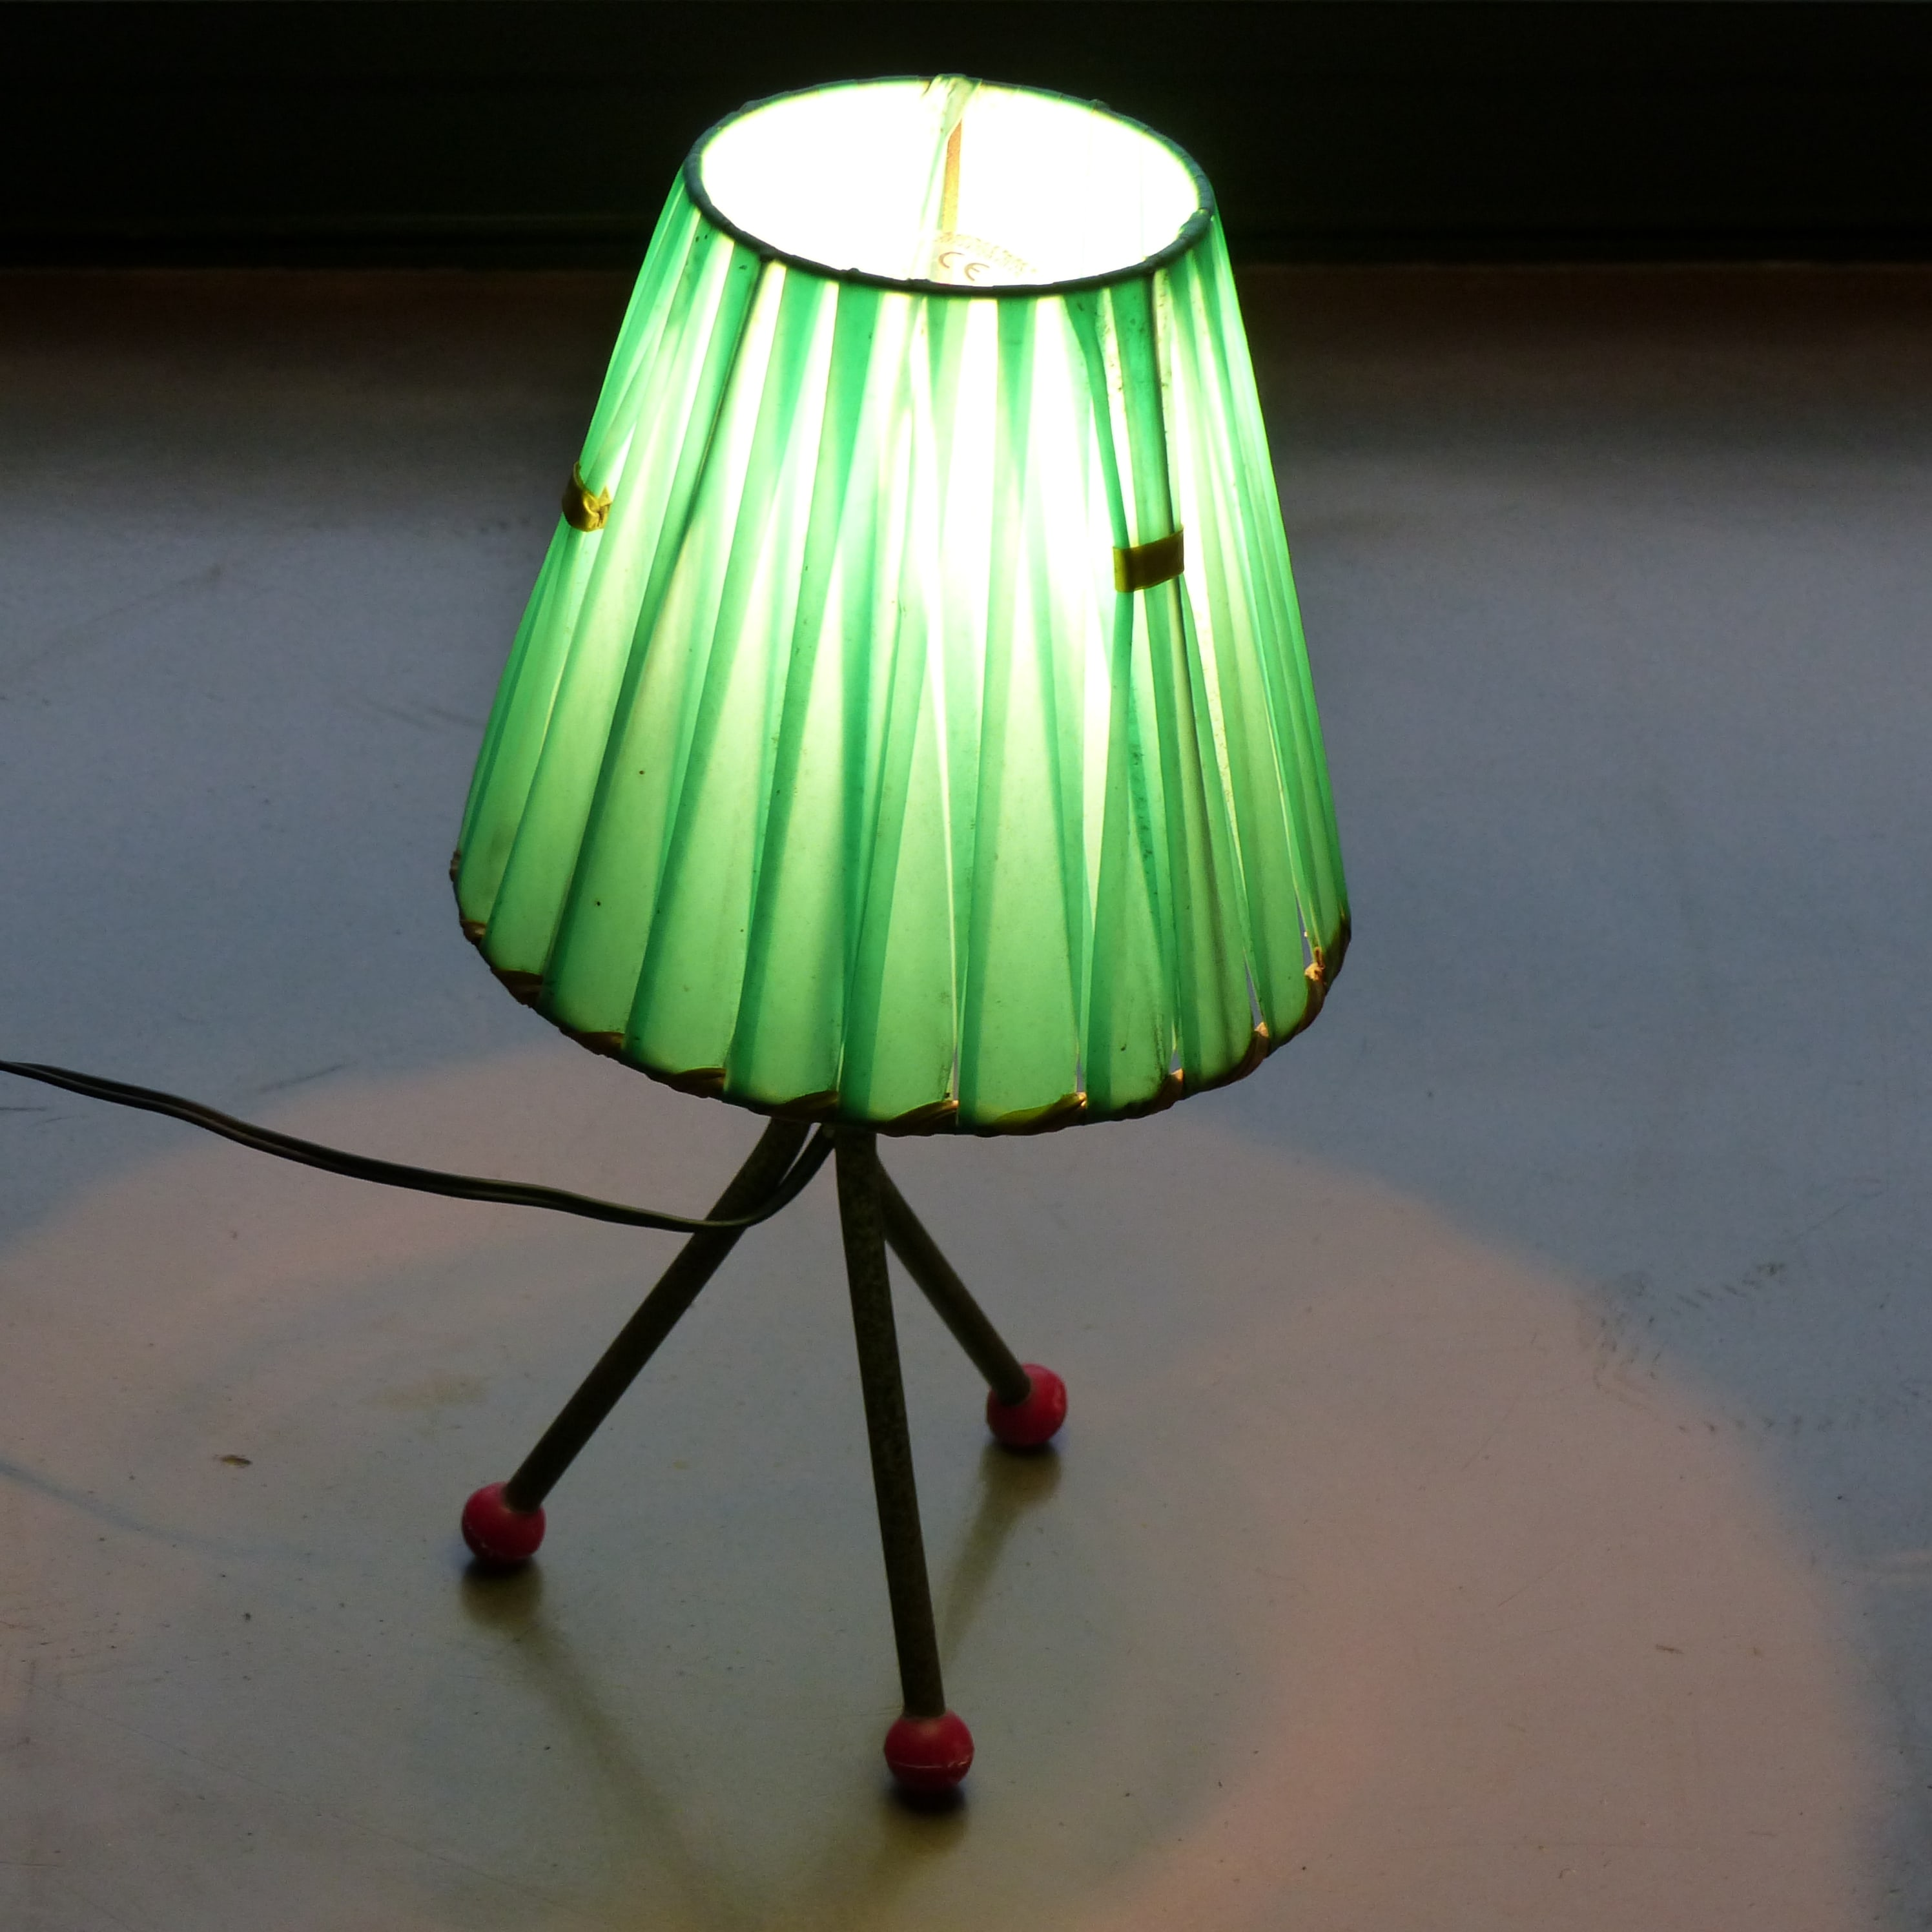 Lampe de chevet vintage maison design for Lampe de chevet om